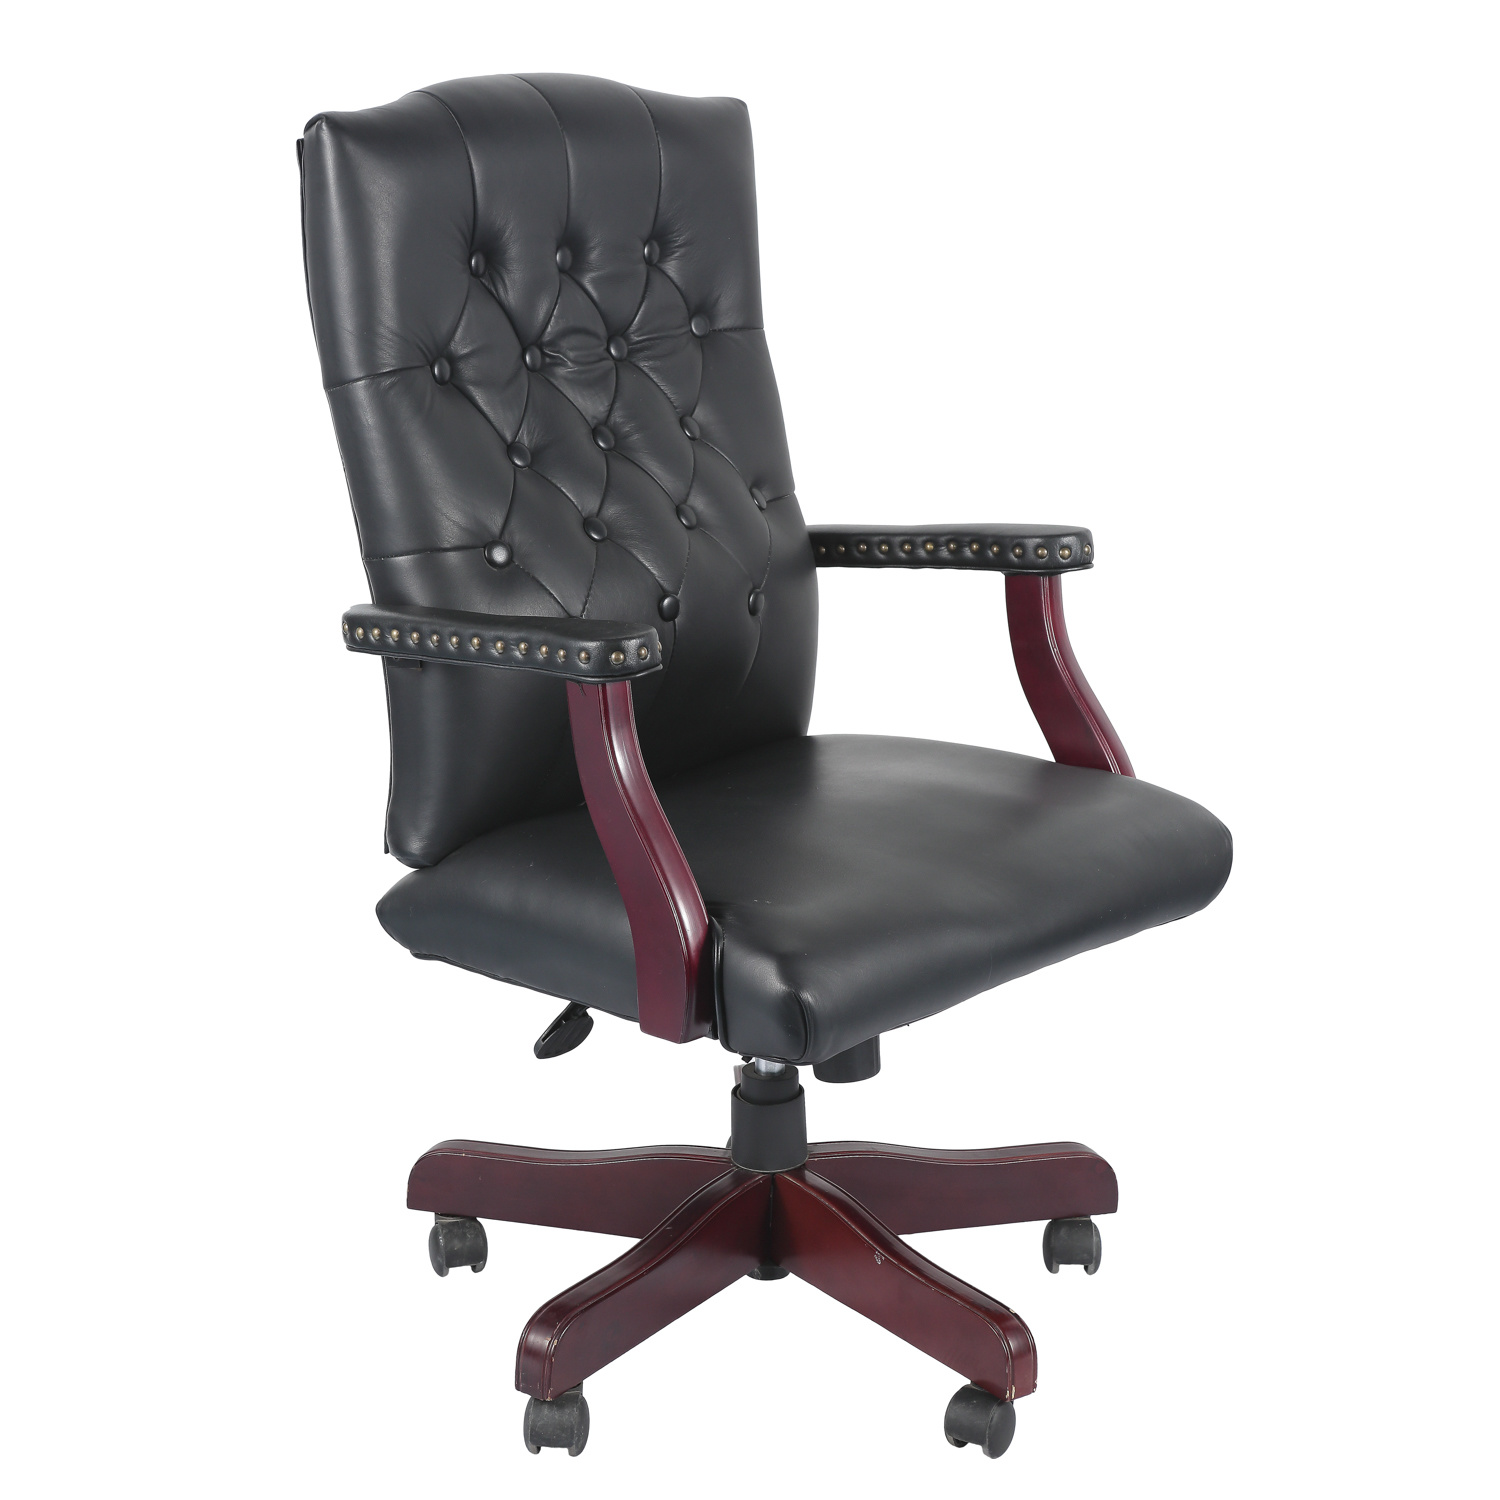 China American Office Swivel Chair With Grain Leather Upholstered And Decorative Nail Trim Furniture